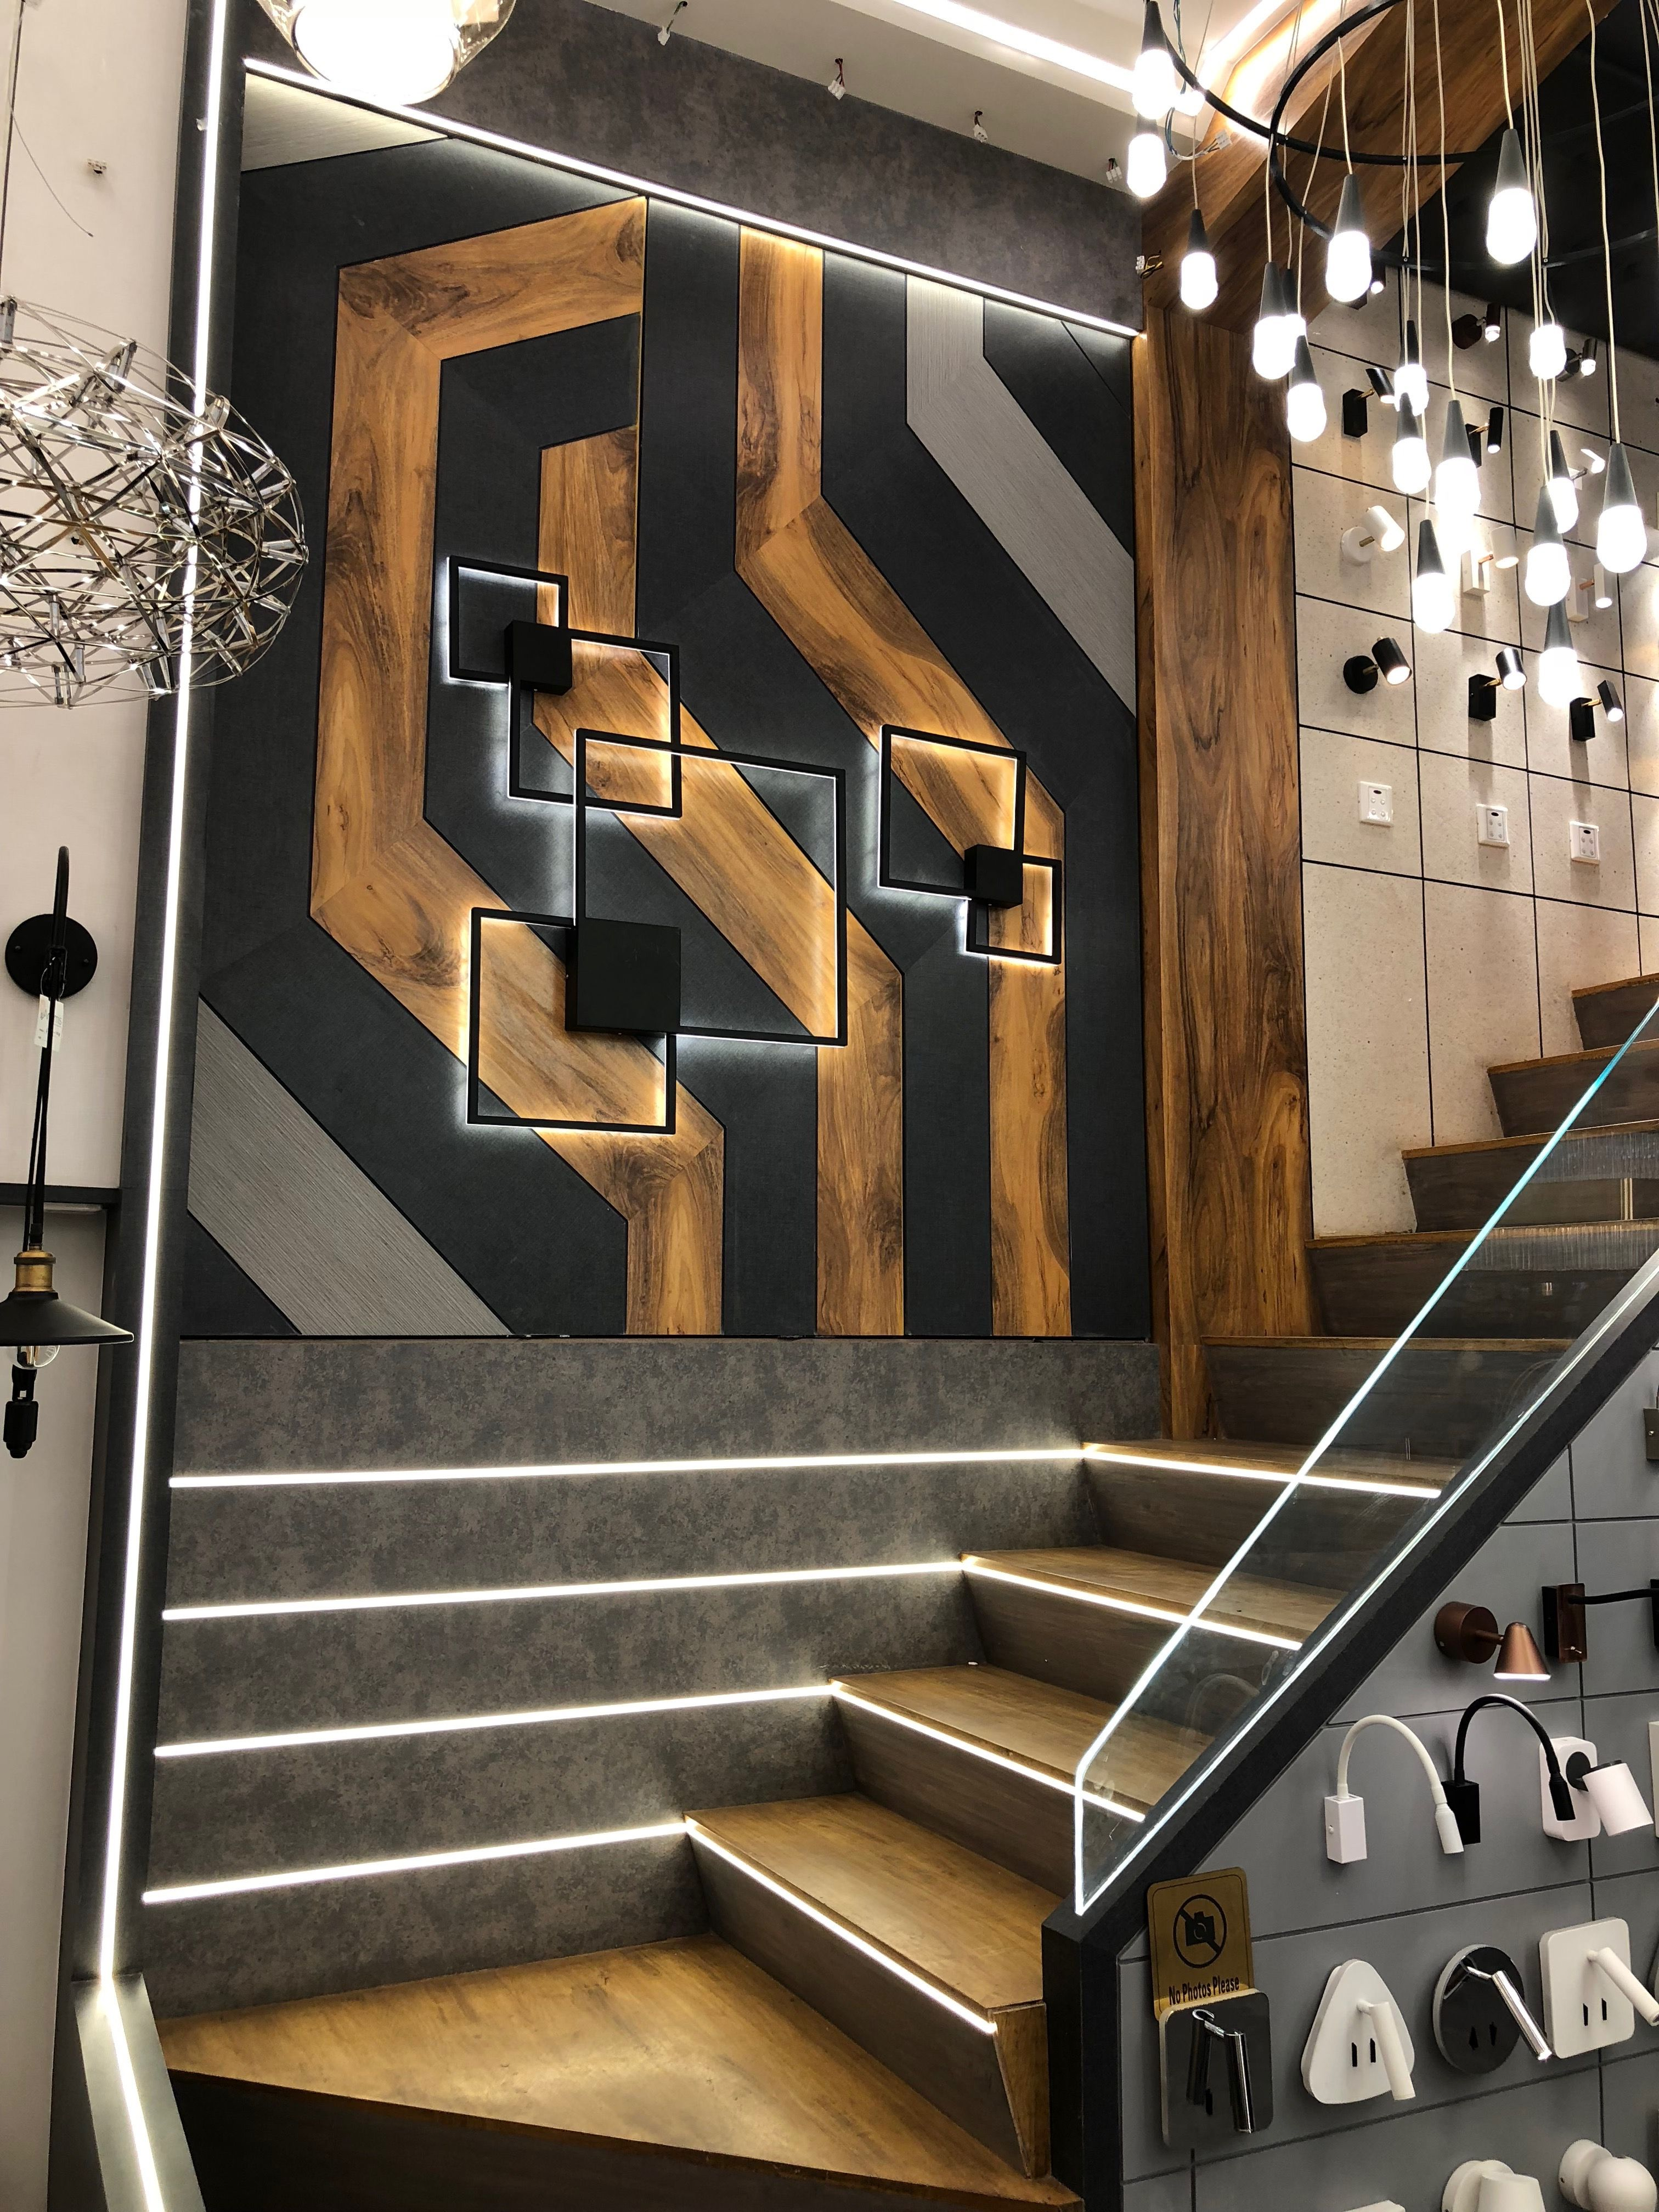 Lighting Showroom Profile Lighting Patternlight Staircase | Interior Design For Staircase Wall | Side Wall | Cladding | Outside | 2Nd Floor | Under Stair